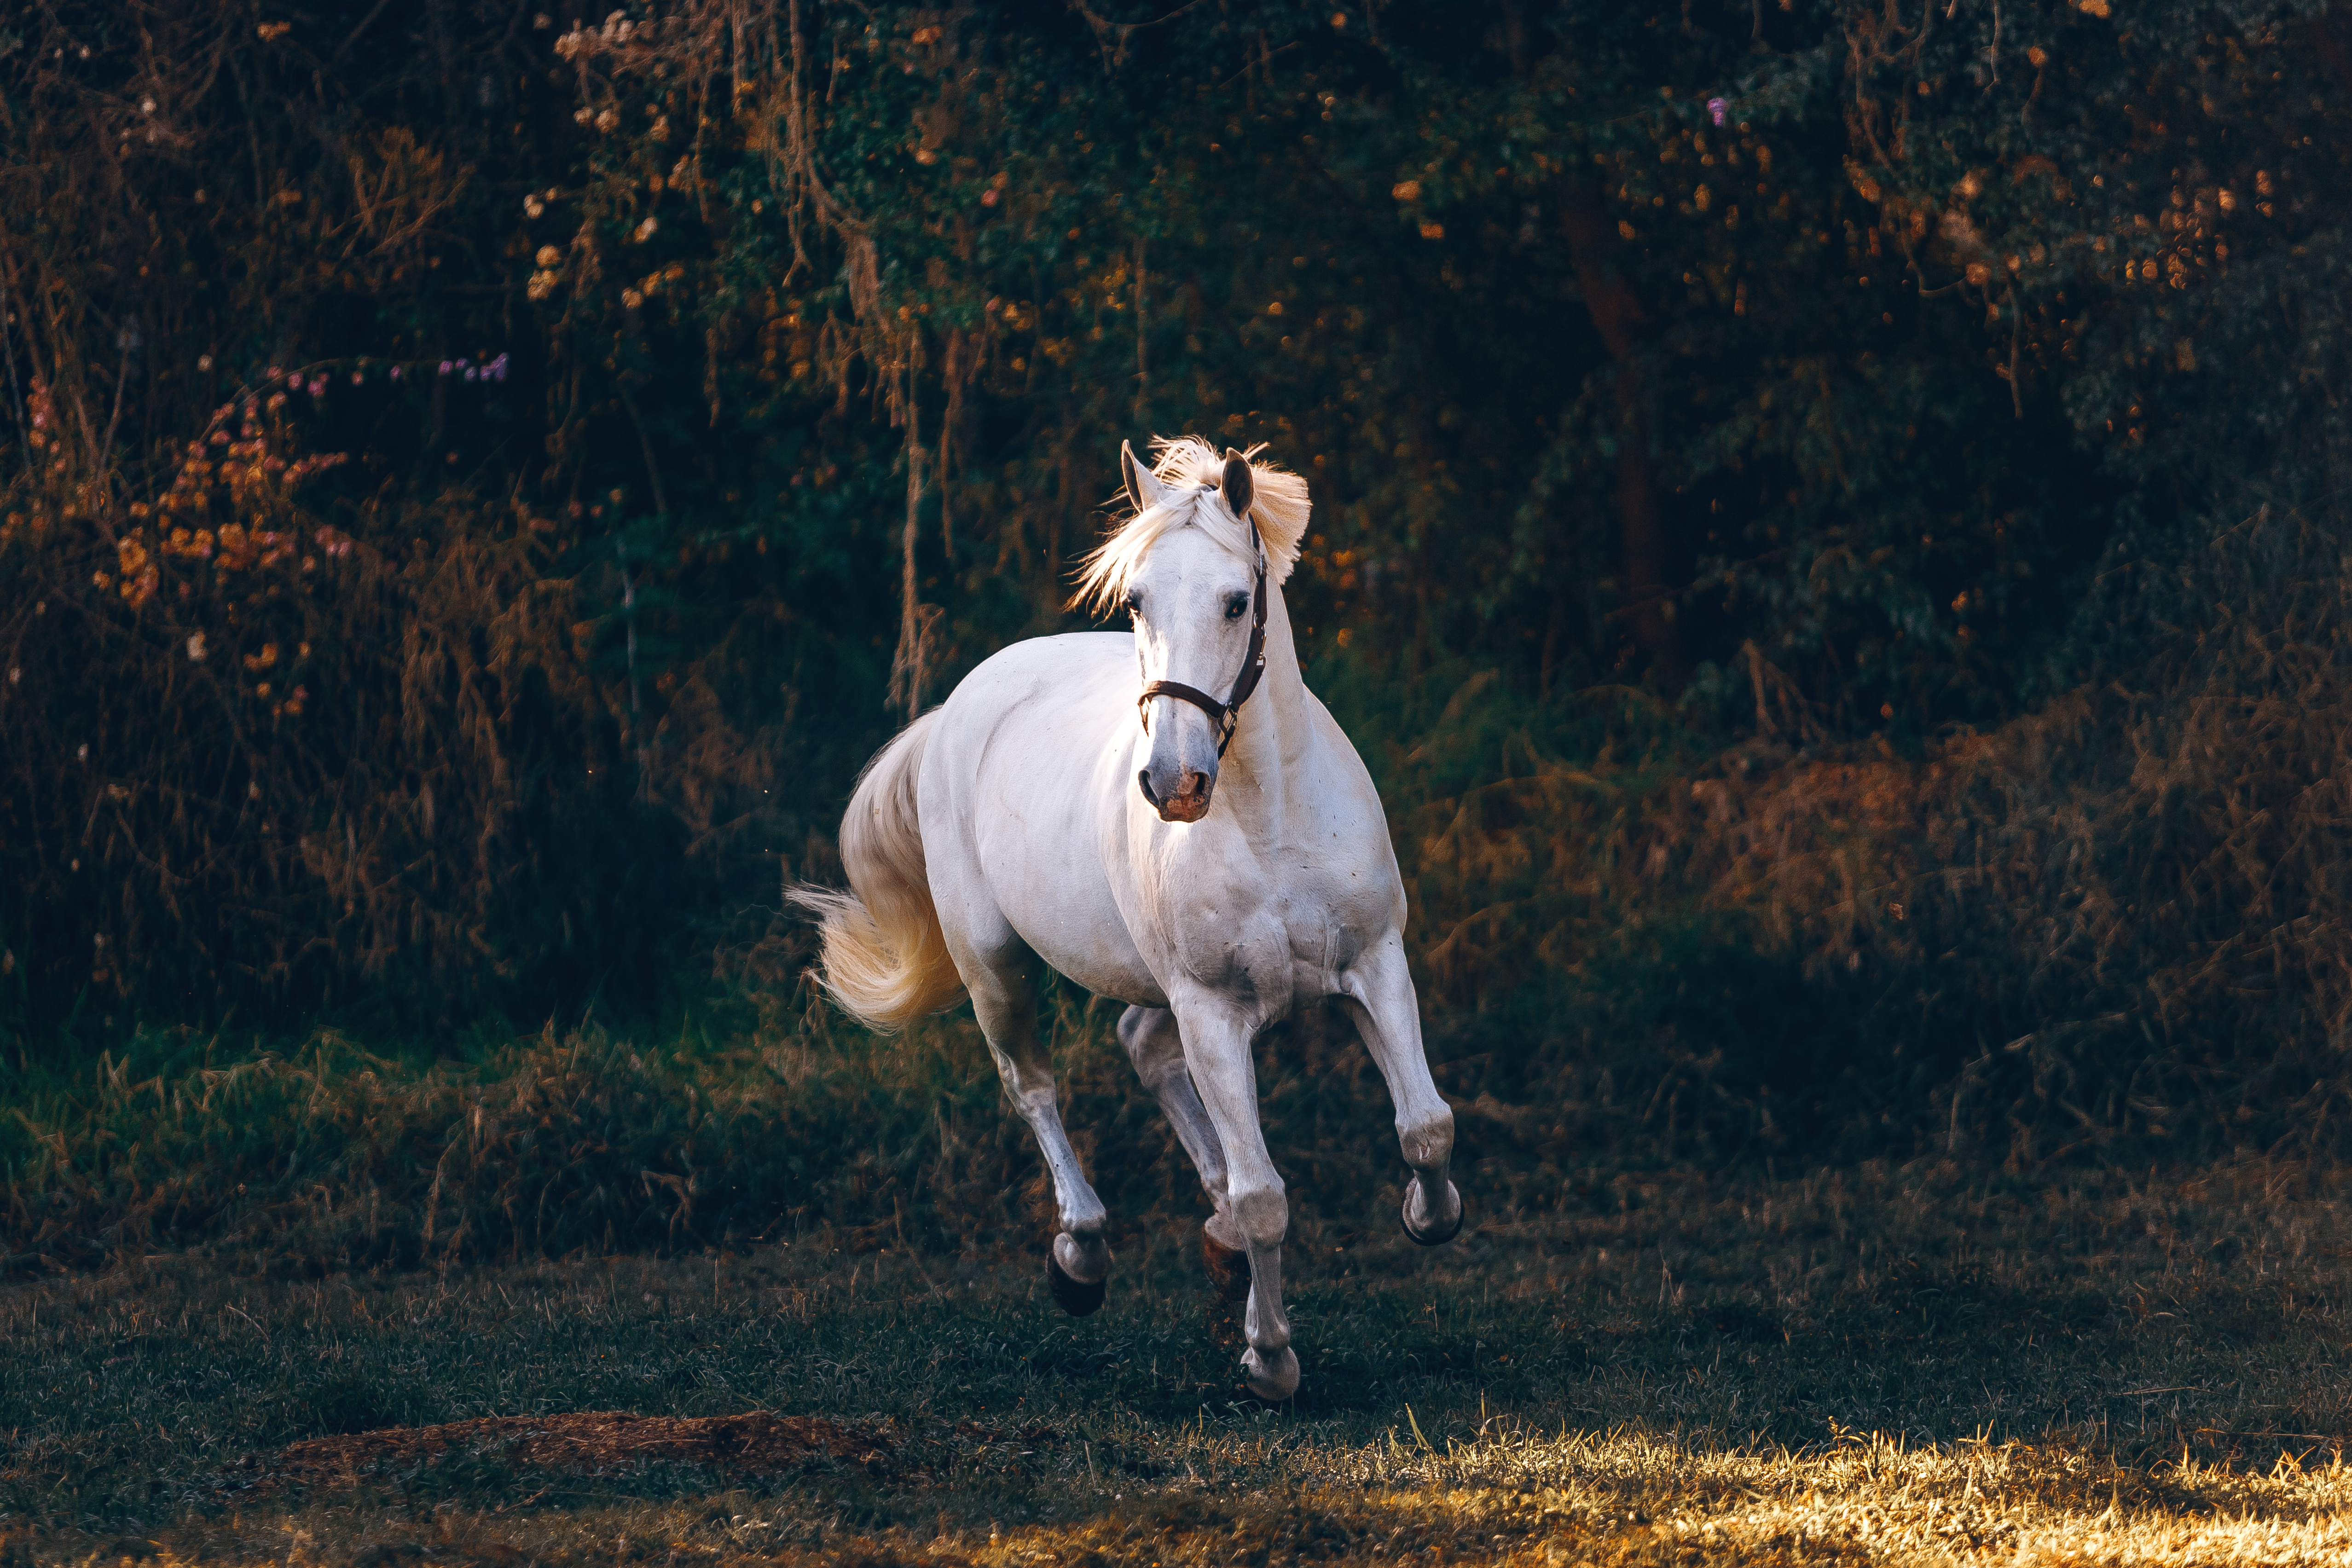 Horse Wallpaper Cheaper Than Retail Price Buy Clothing Accessories And Lifestyle Products For Women Men